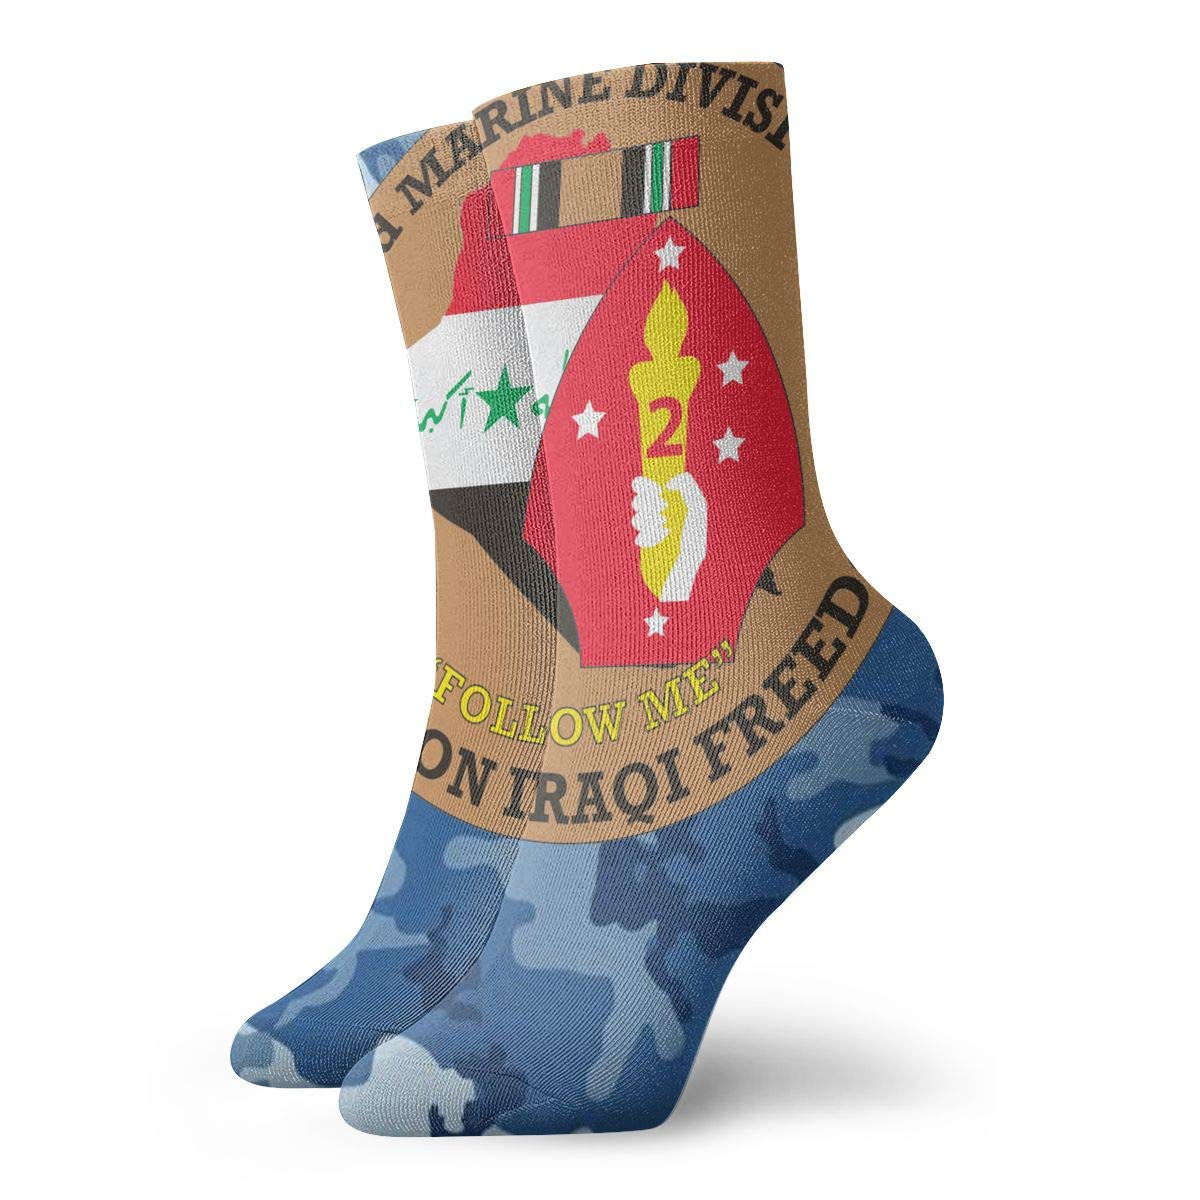 2nd Marine Division OIF Unisex Holiday Sock 30cm Long Sock